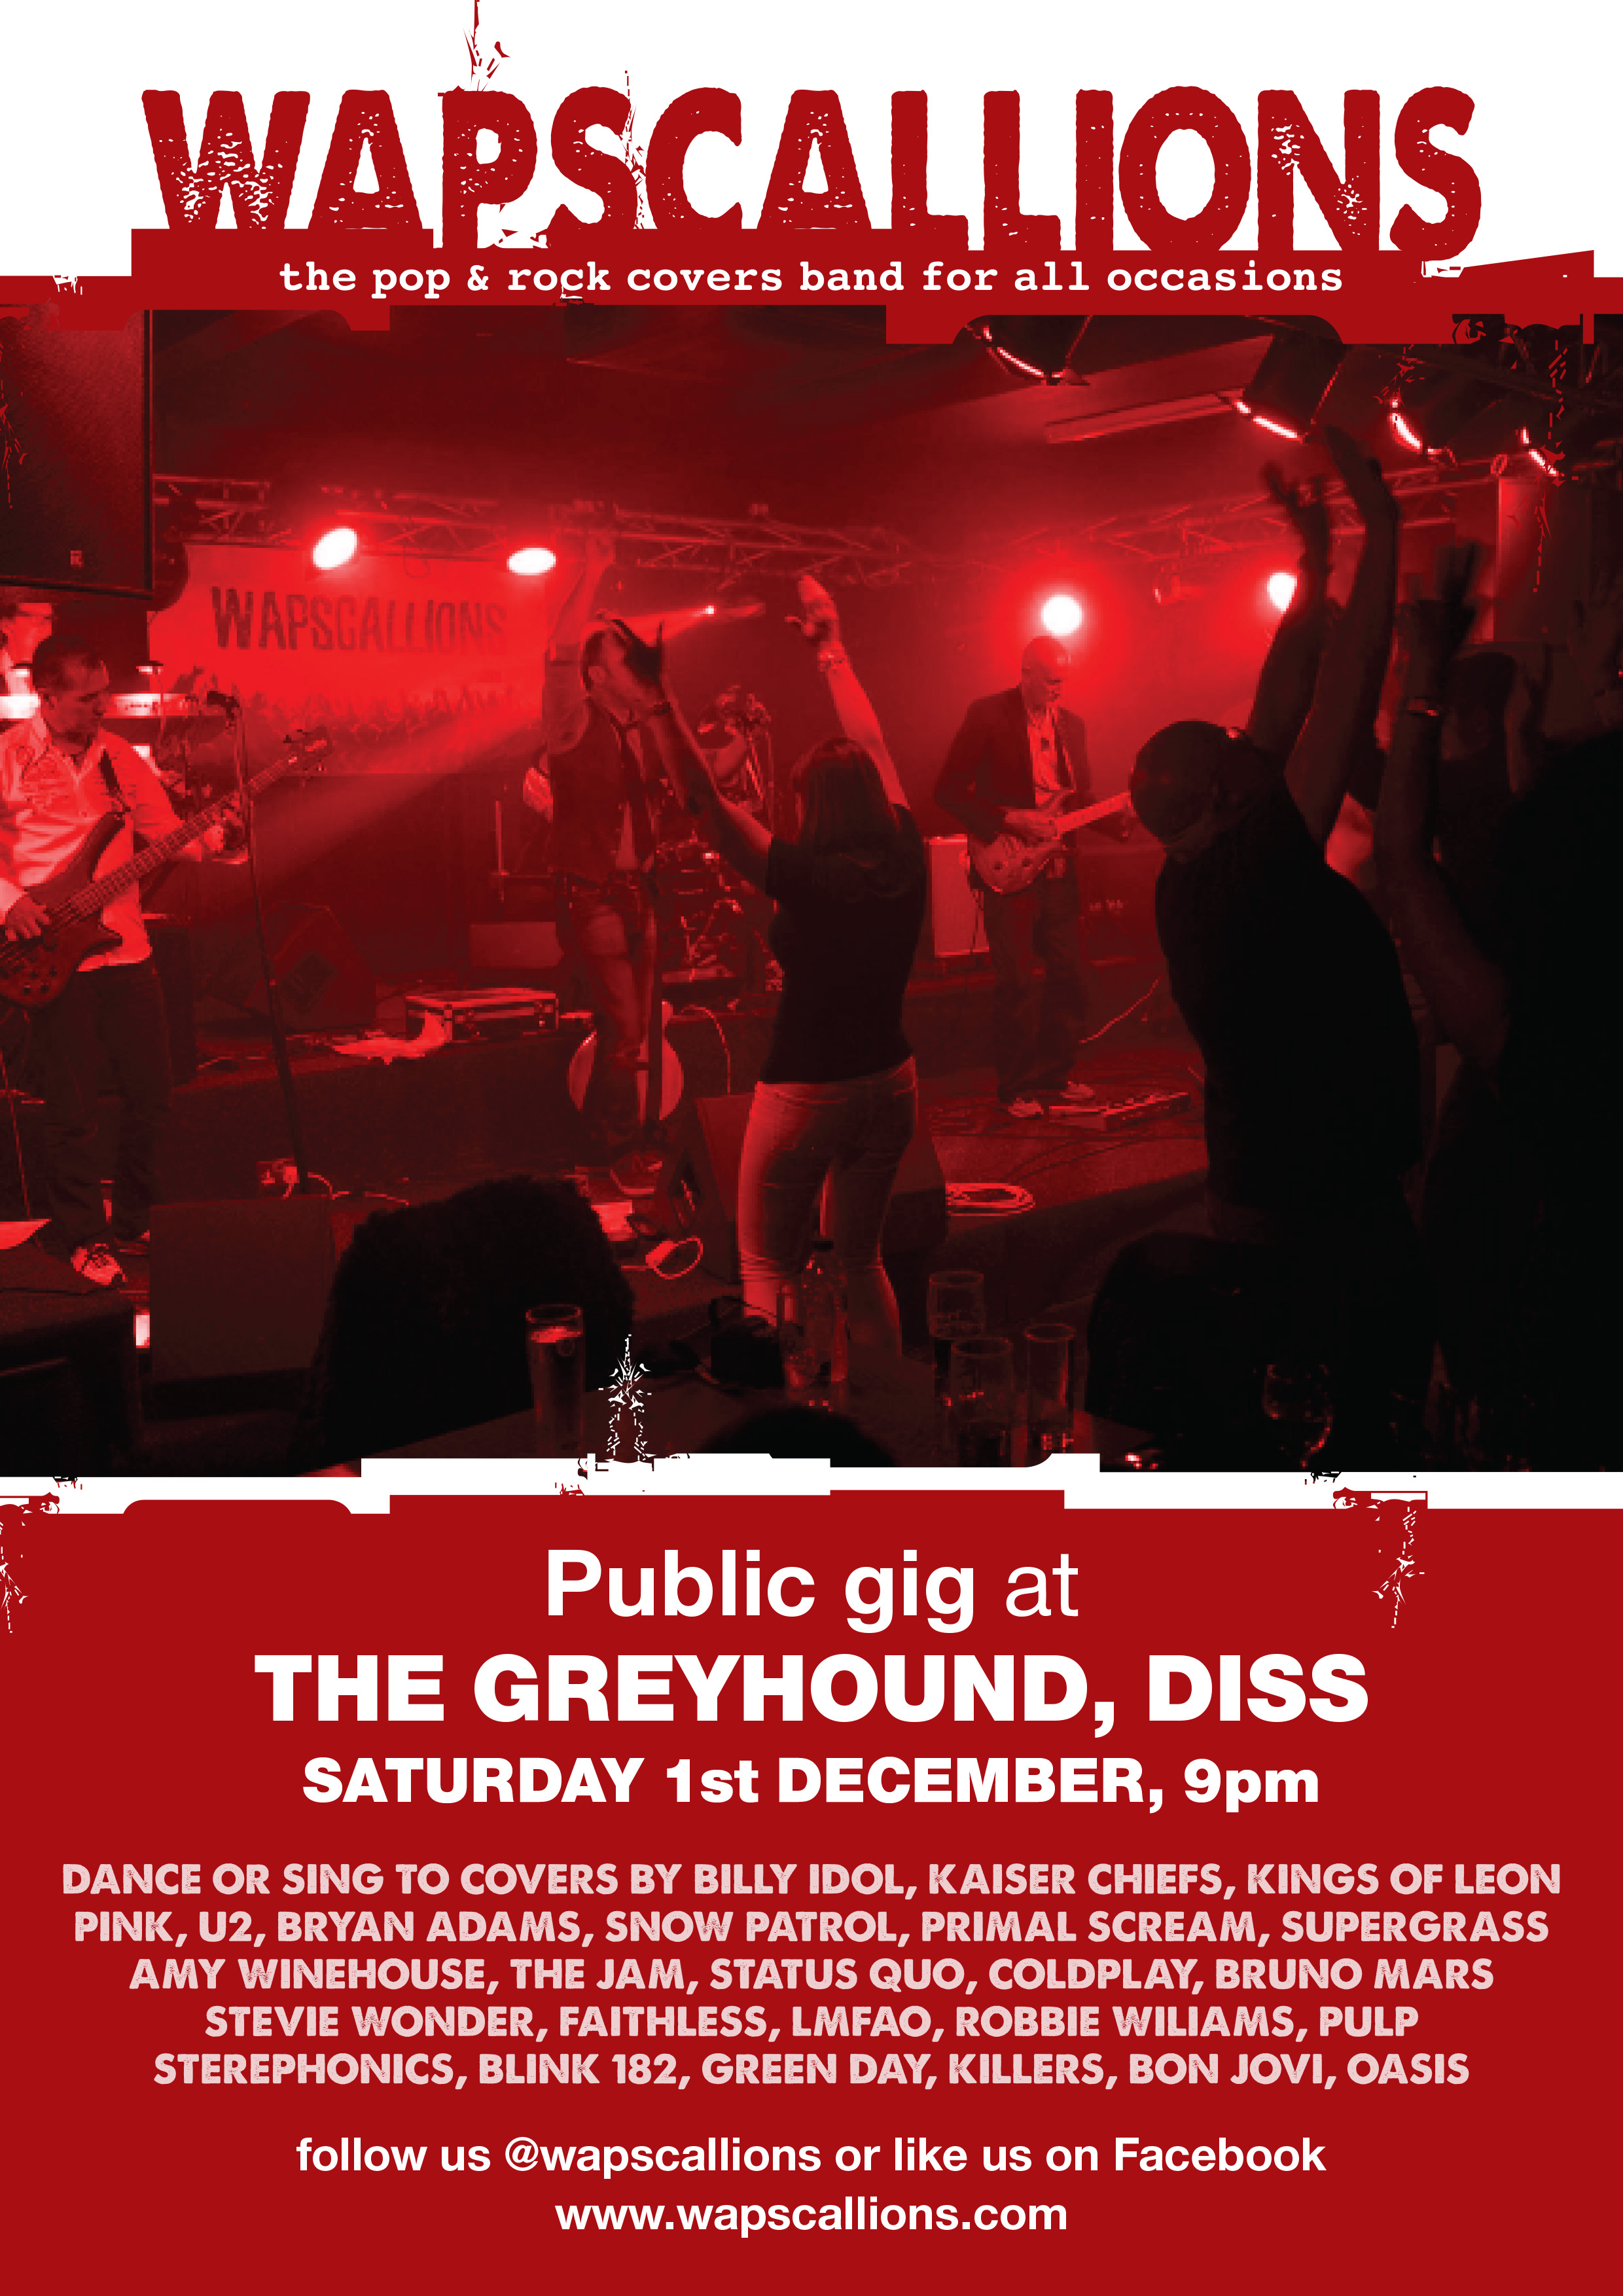 Diss Greyhound - Wapscallions Rock and Pop Covers Band, Norwich